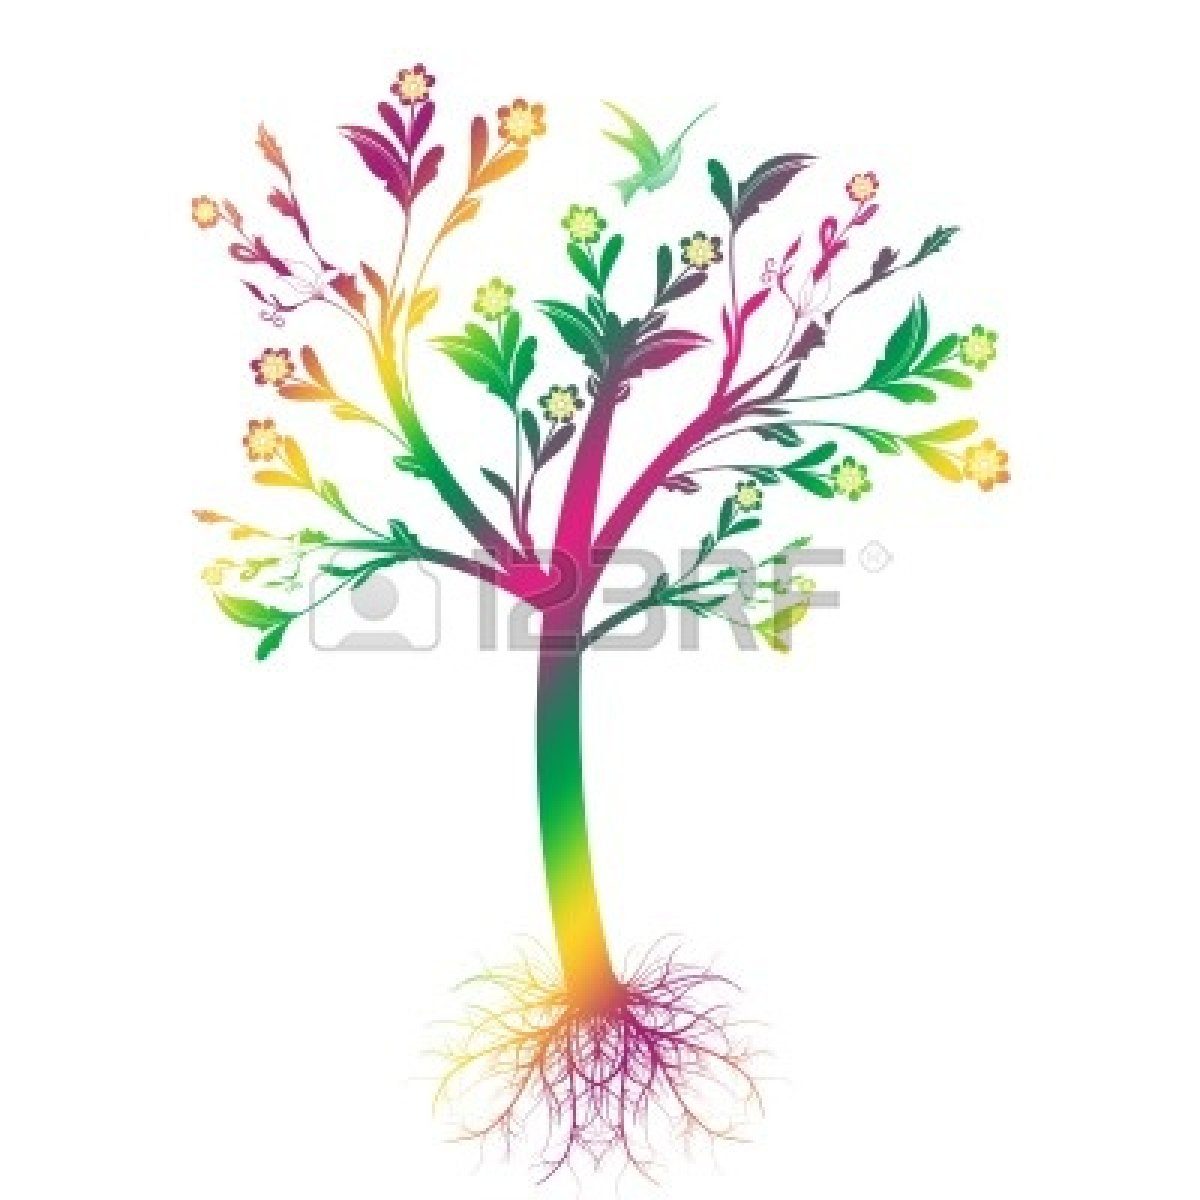 1200x1200 Family Tree With Roots Clipart